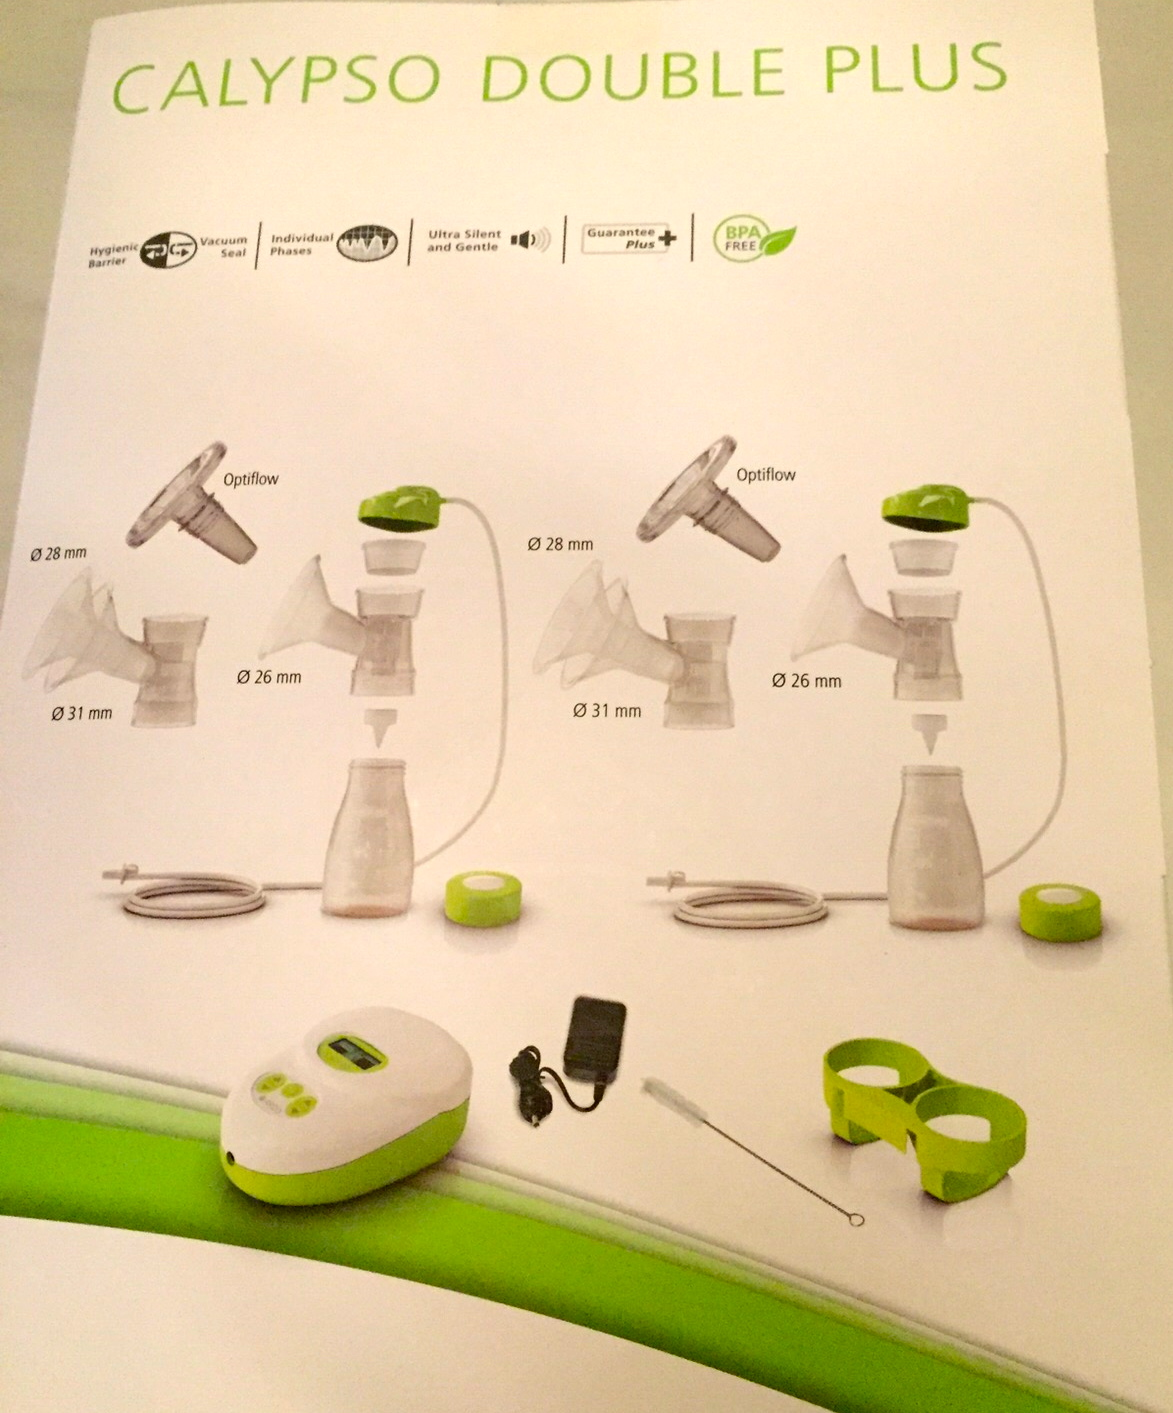 A Review Of The Ardo Calypso Double Plus Breastpump Kerry Louise